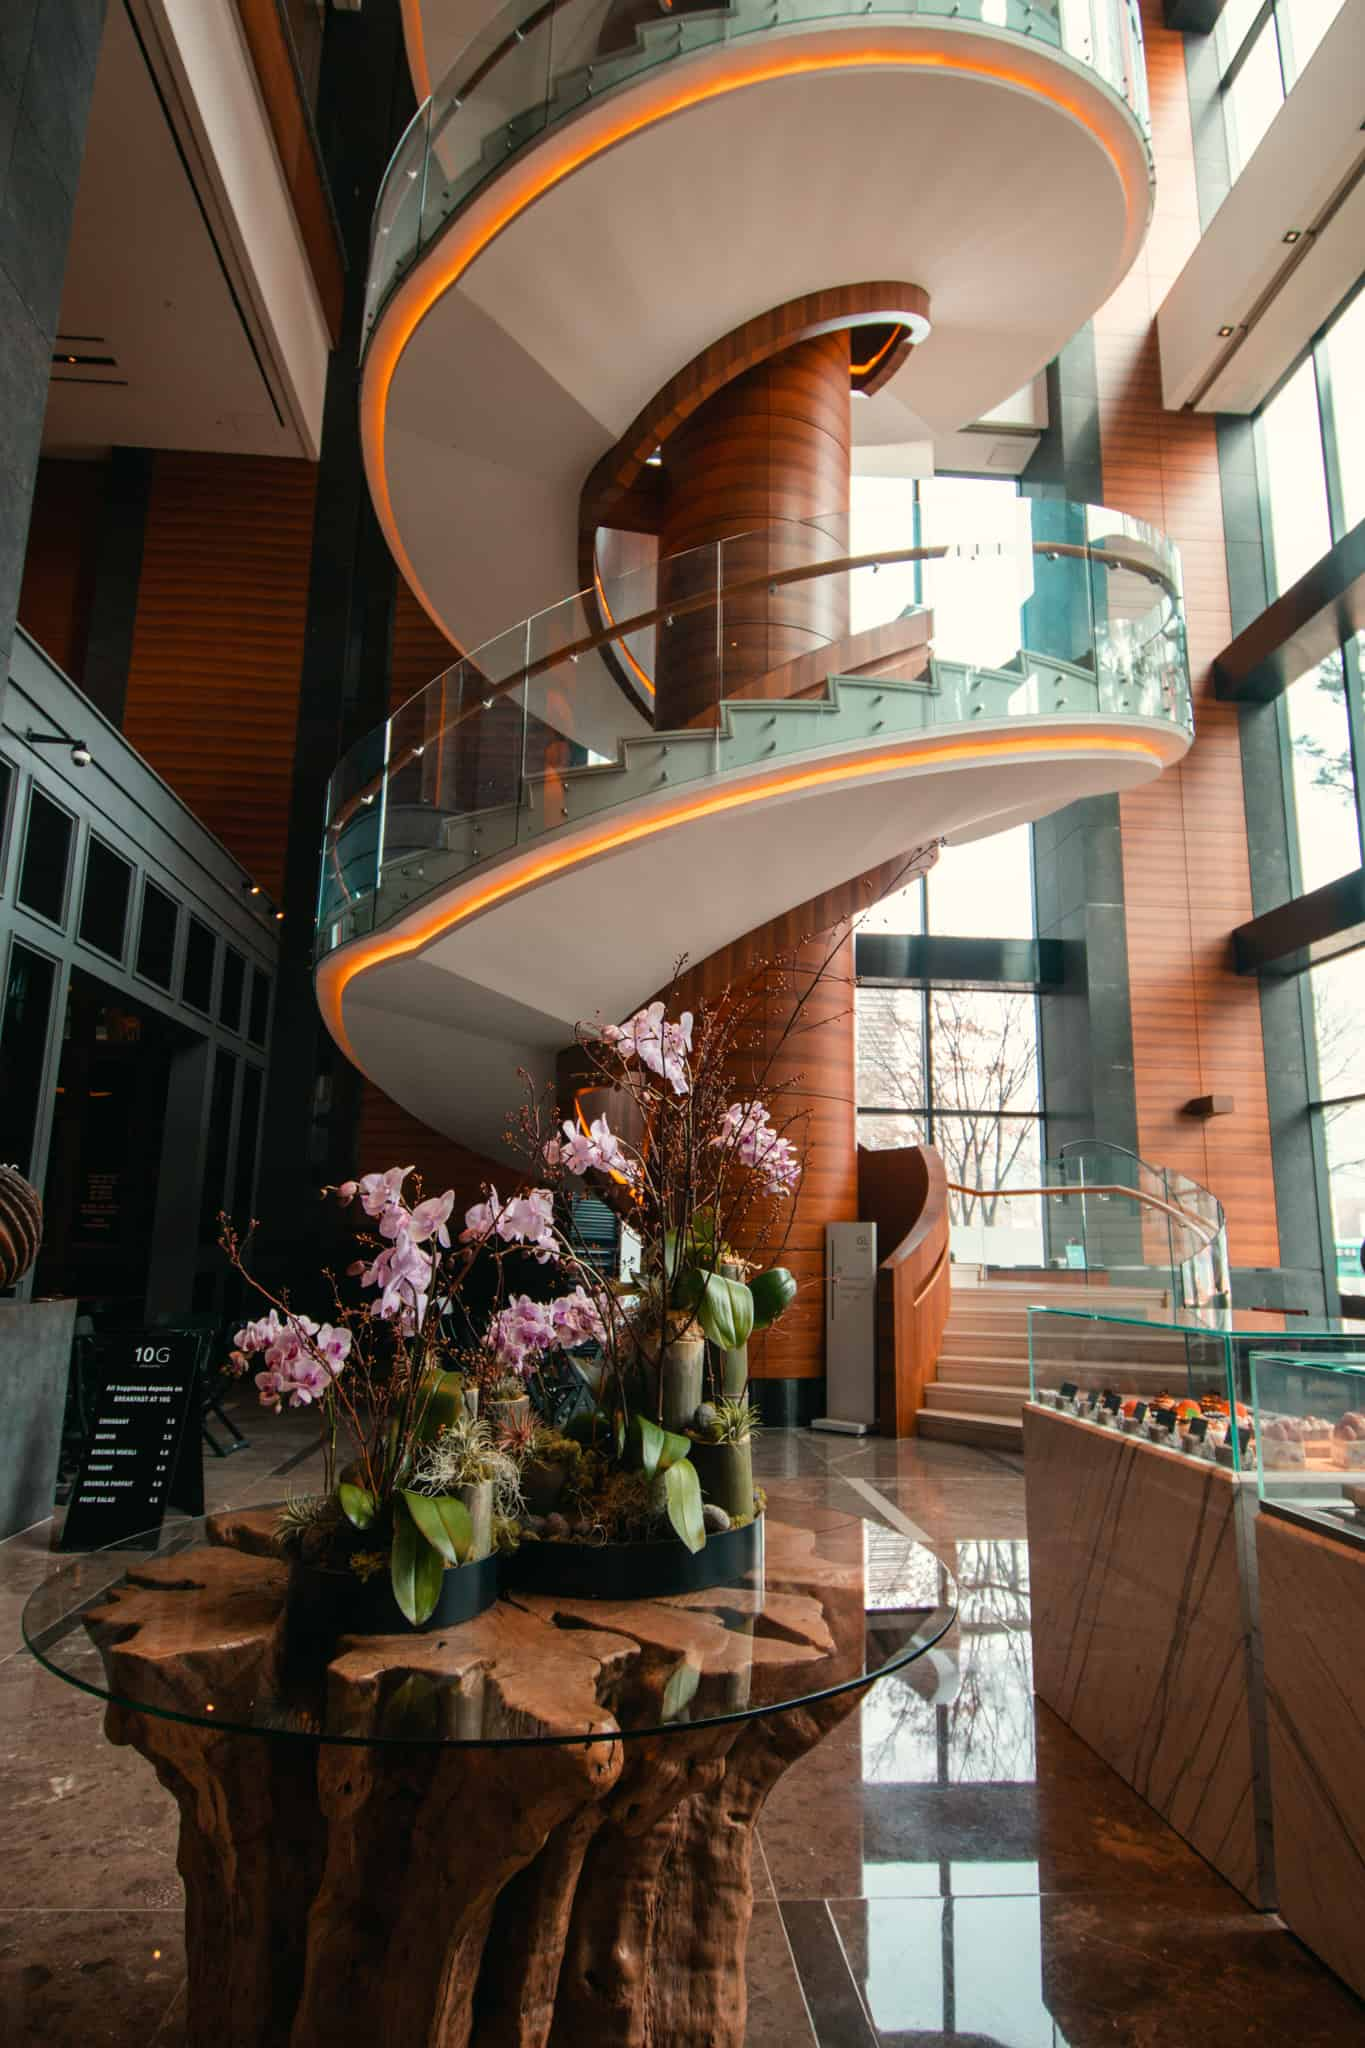 tallest spiral staircase in Korea at the hotel